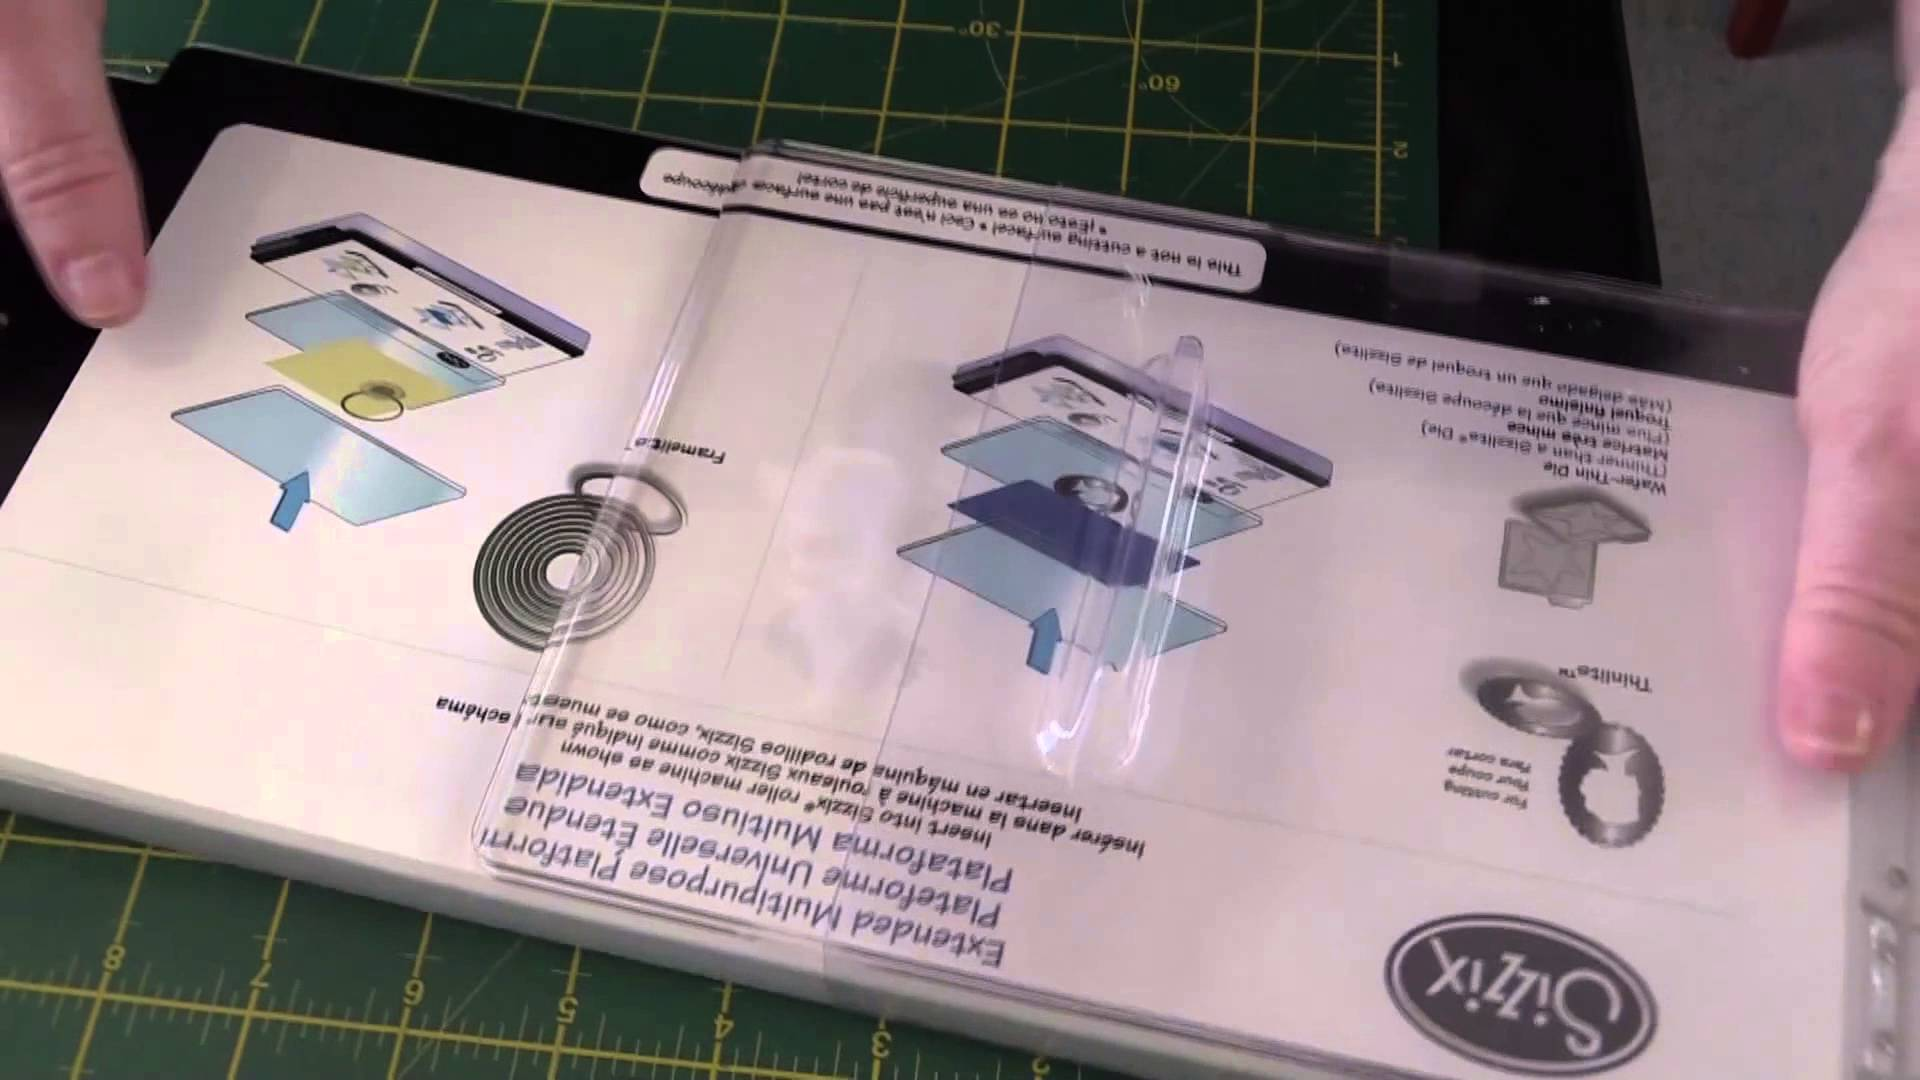 Sizzix Big Shot, Die Cutting and Embossing Machine, Unboxing